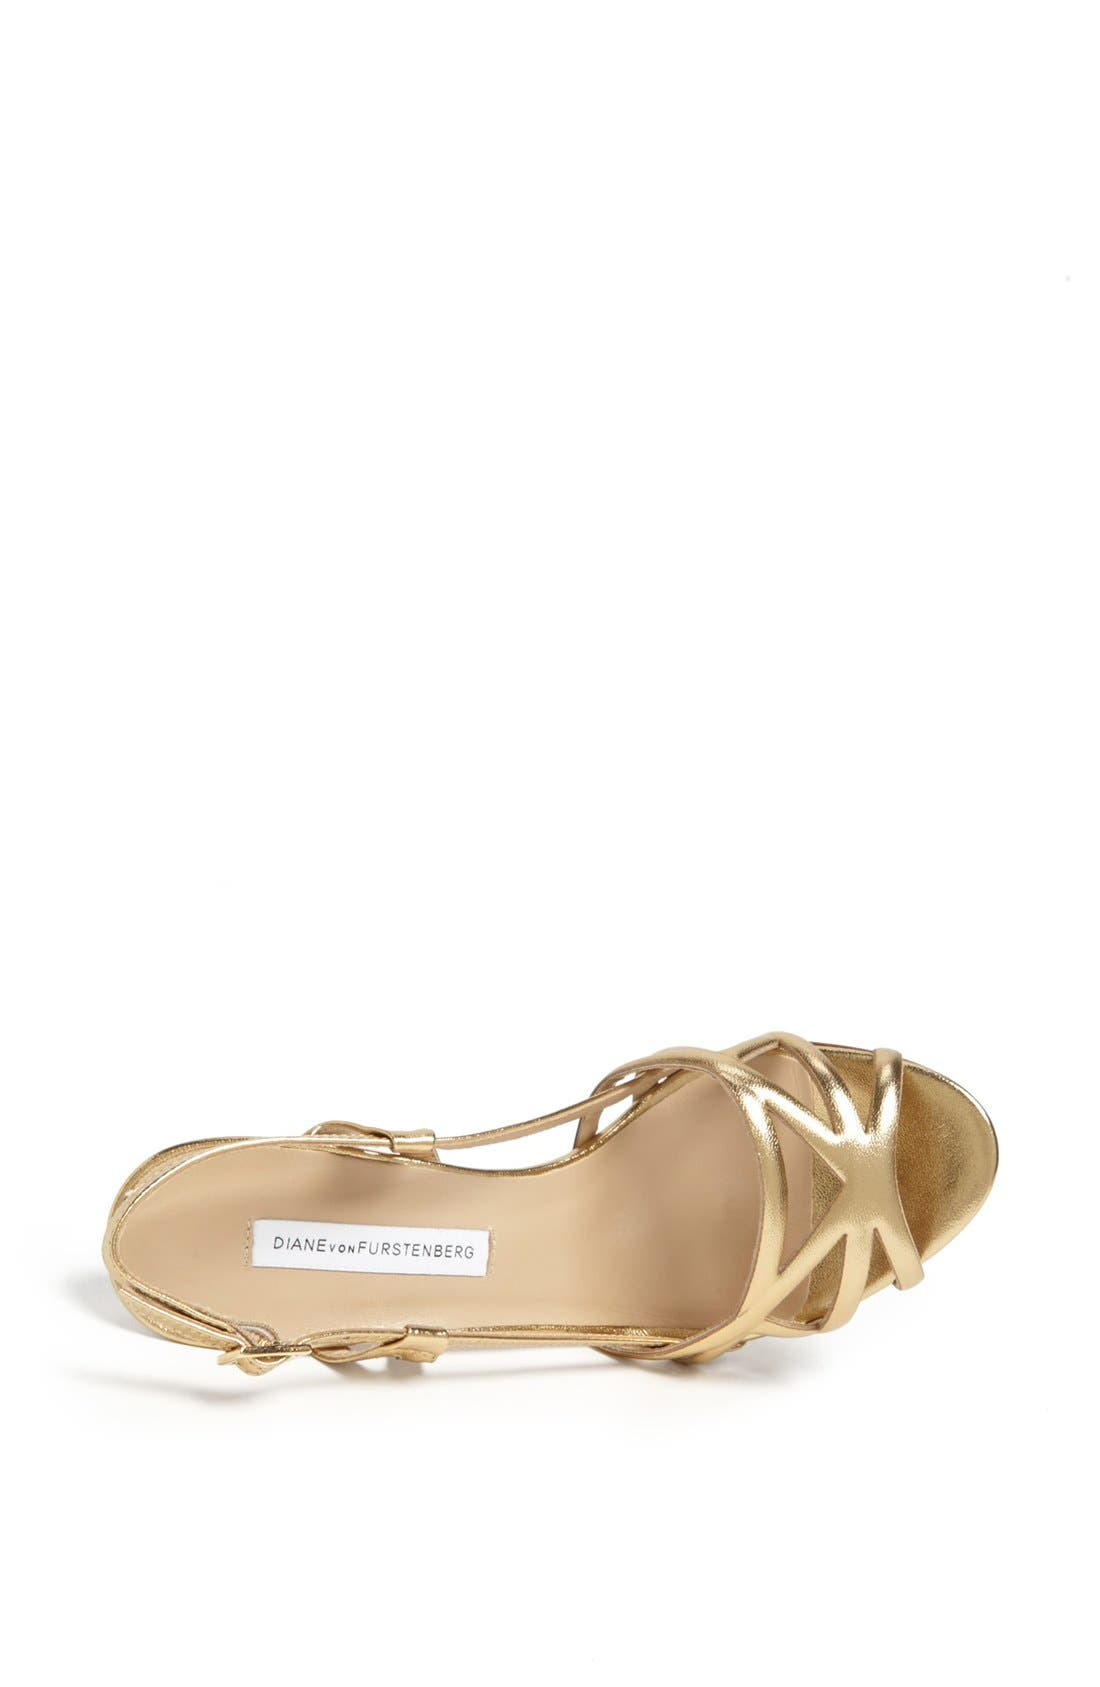 Alternate Image 3  - Diane von Furstenberg 'Upton' Metallic Leather Sandal